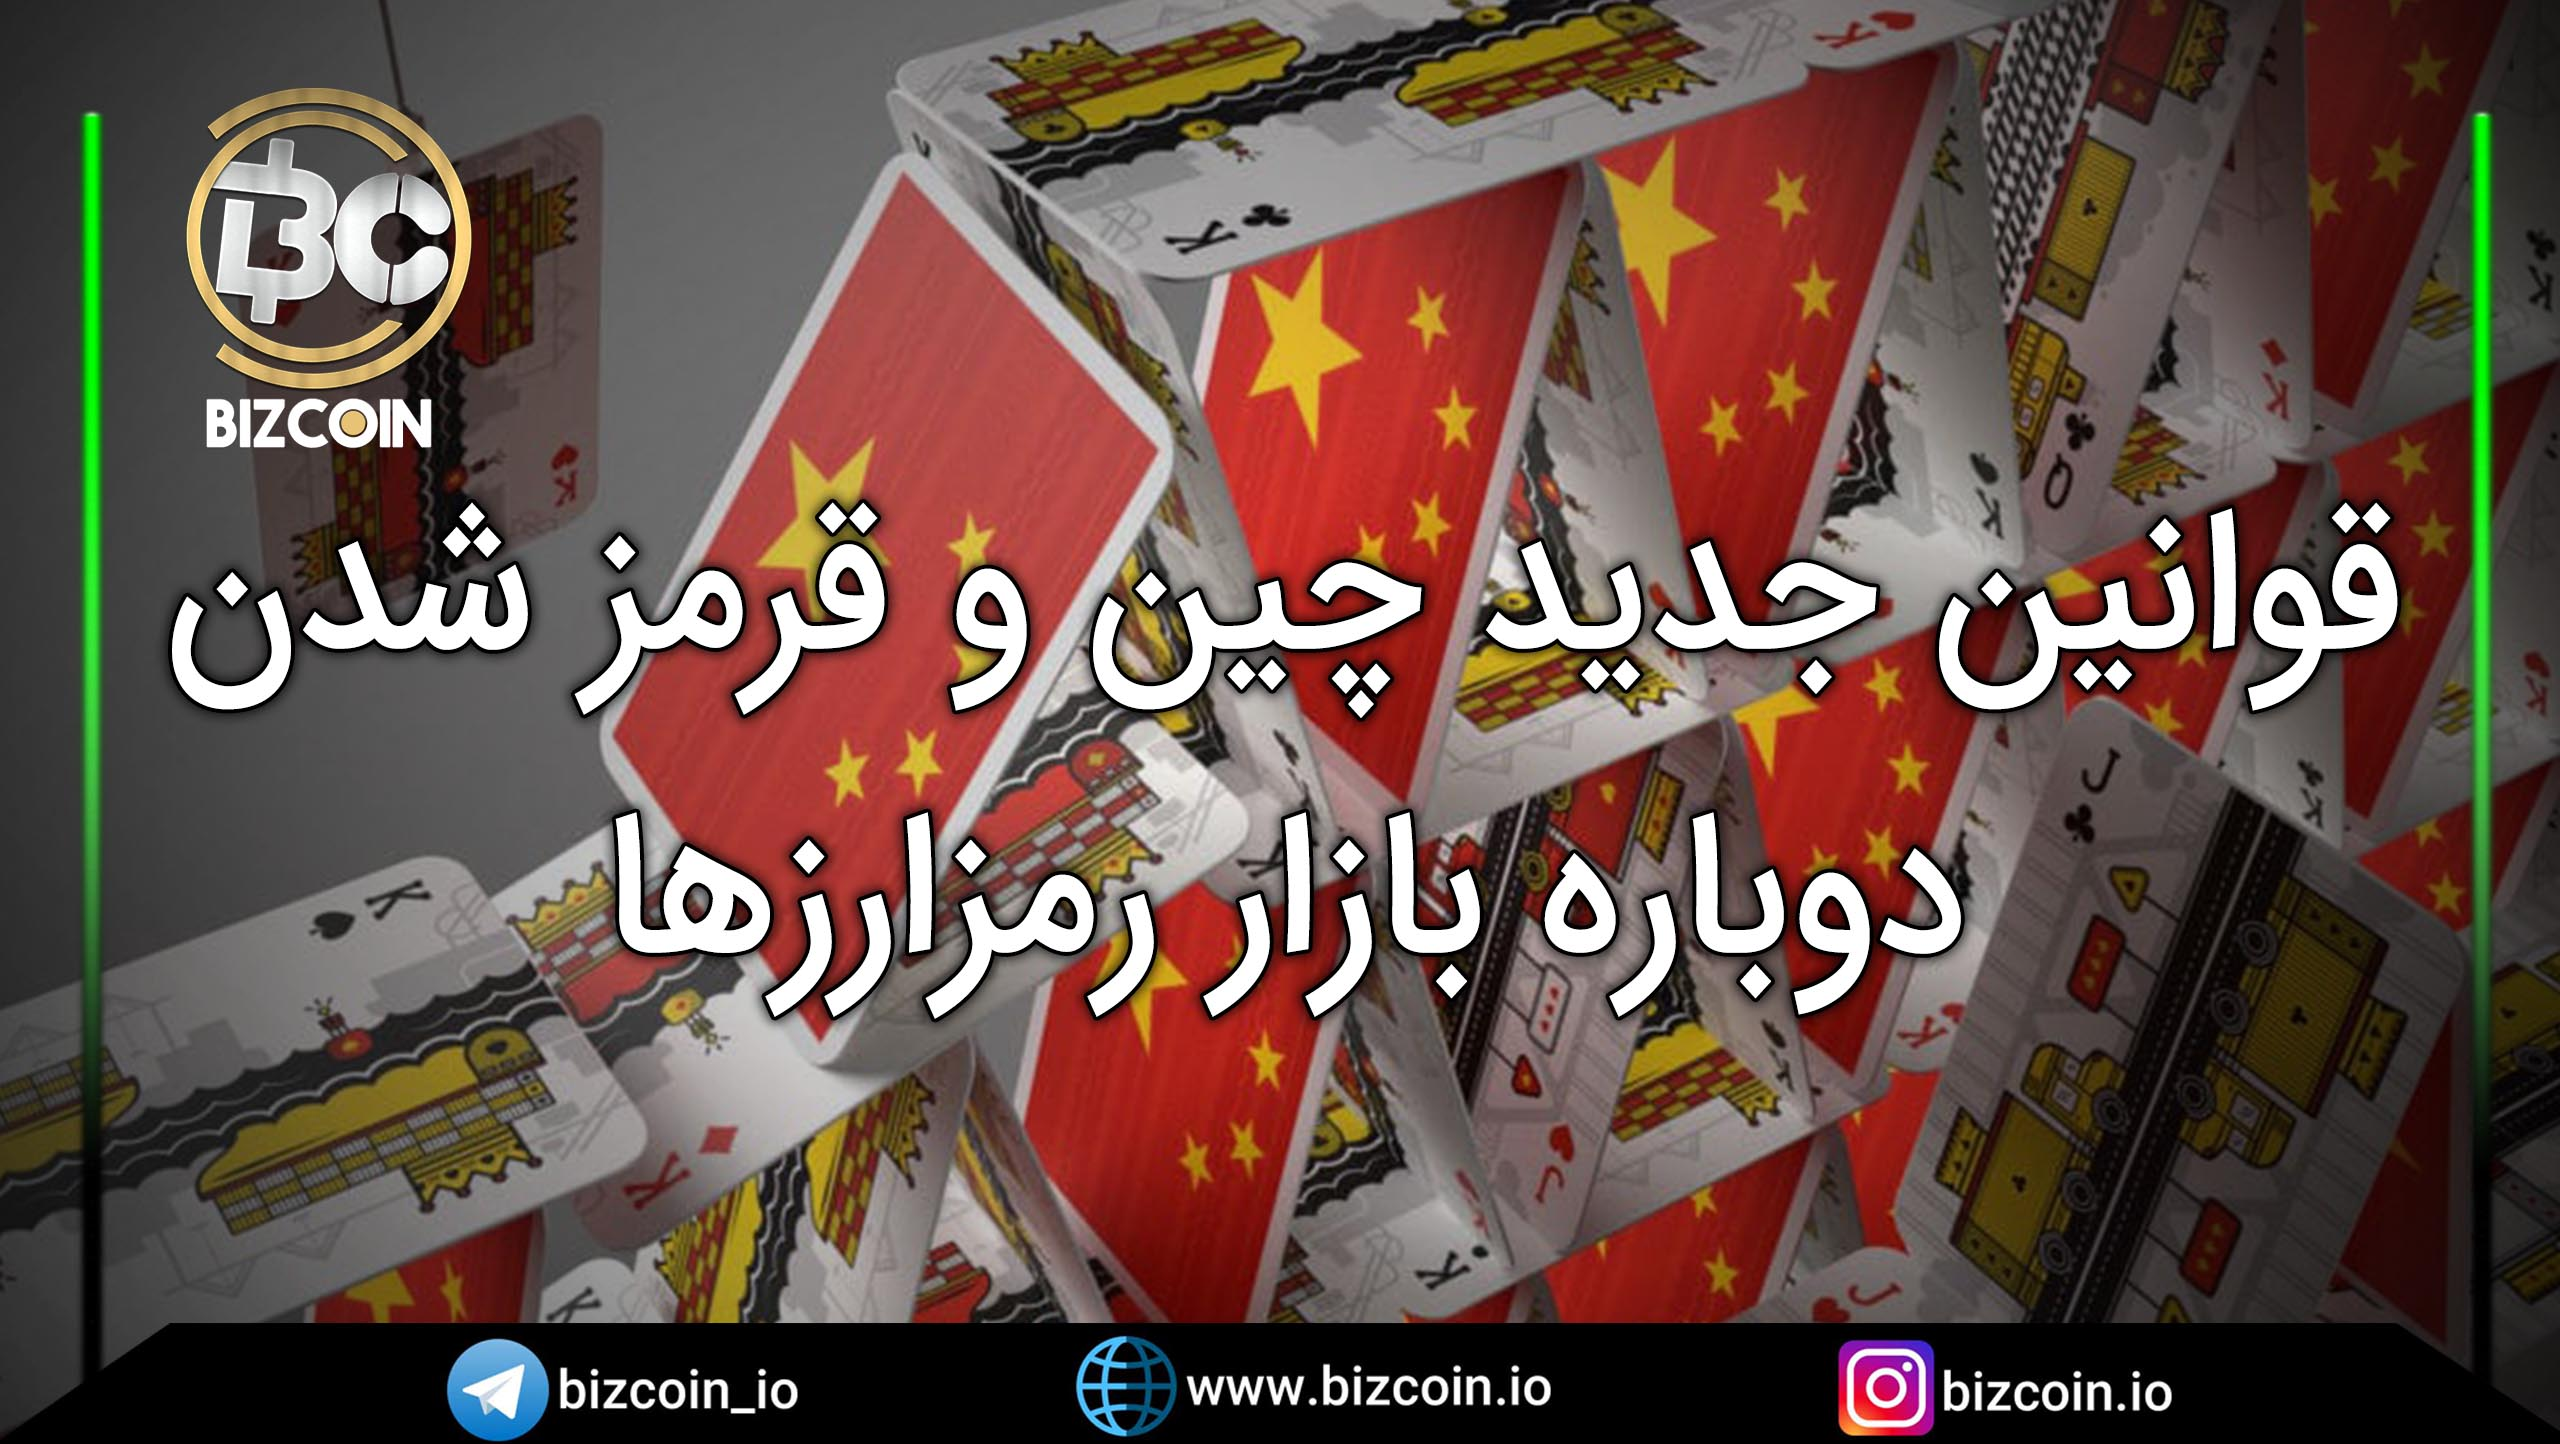 New Chinese rules and redemption of the cryptocurrency market again قوانین جدید چین و قرمز شدن دوباره بازار رمزارزها